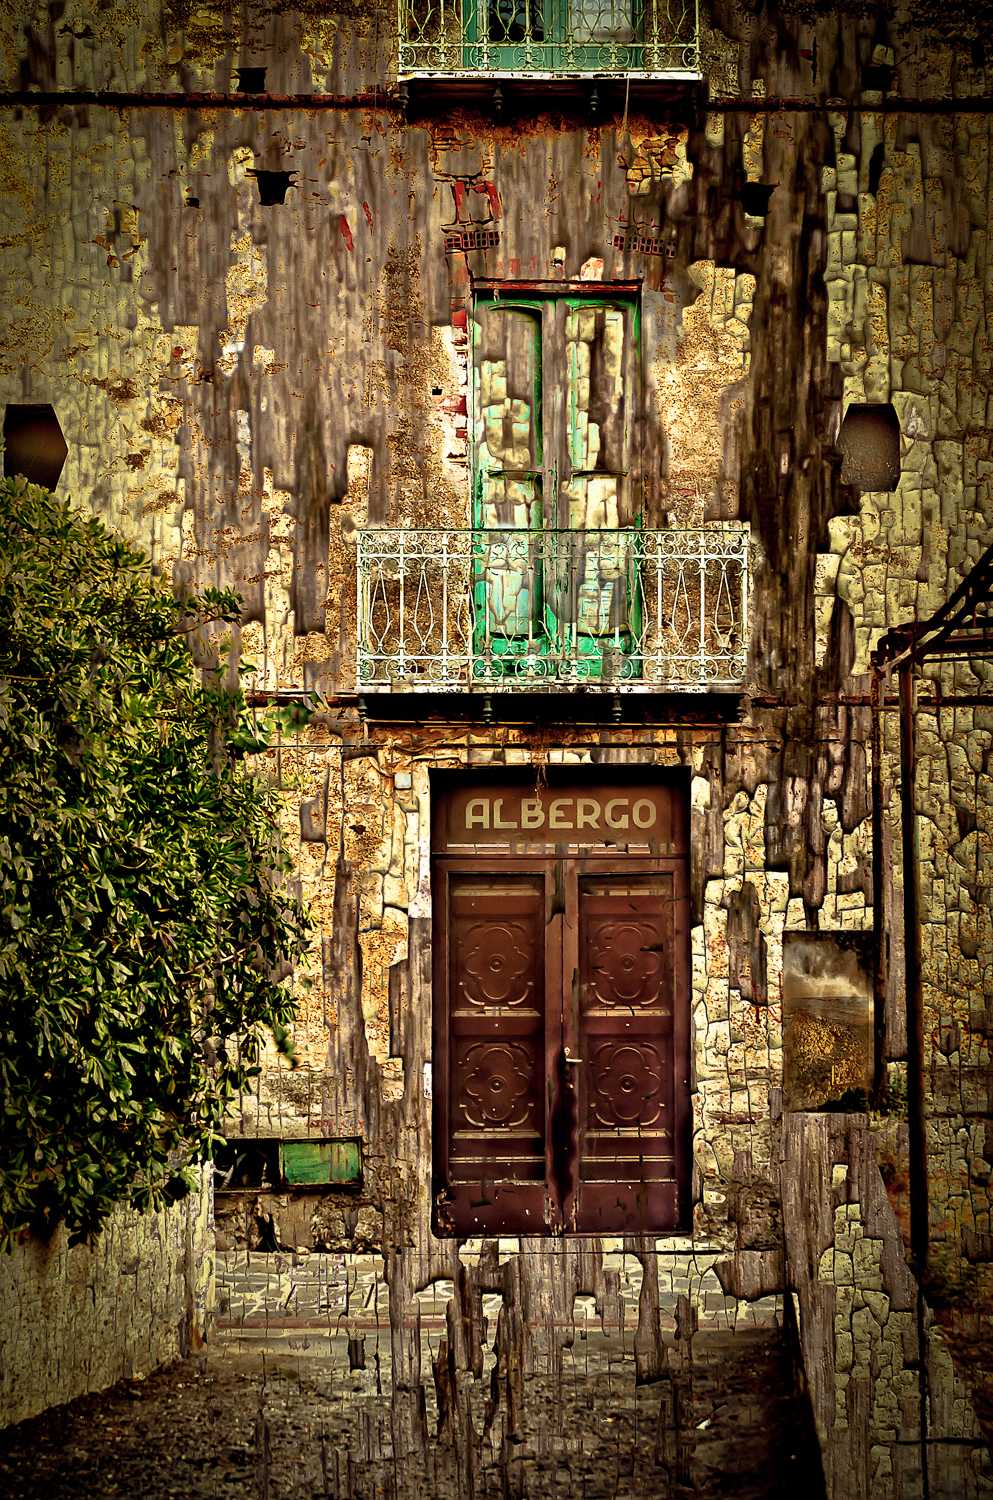 Decaying in Southern Italy